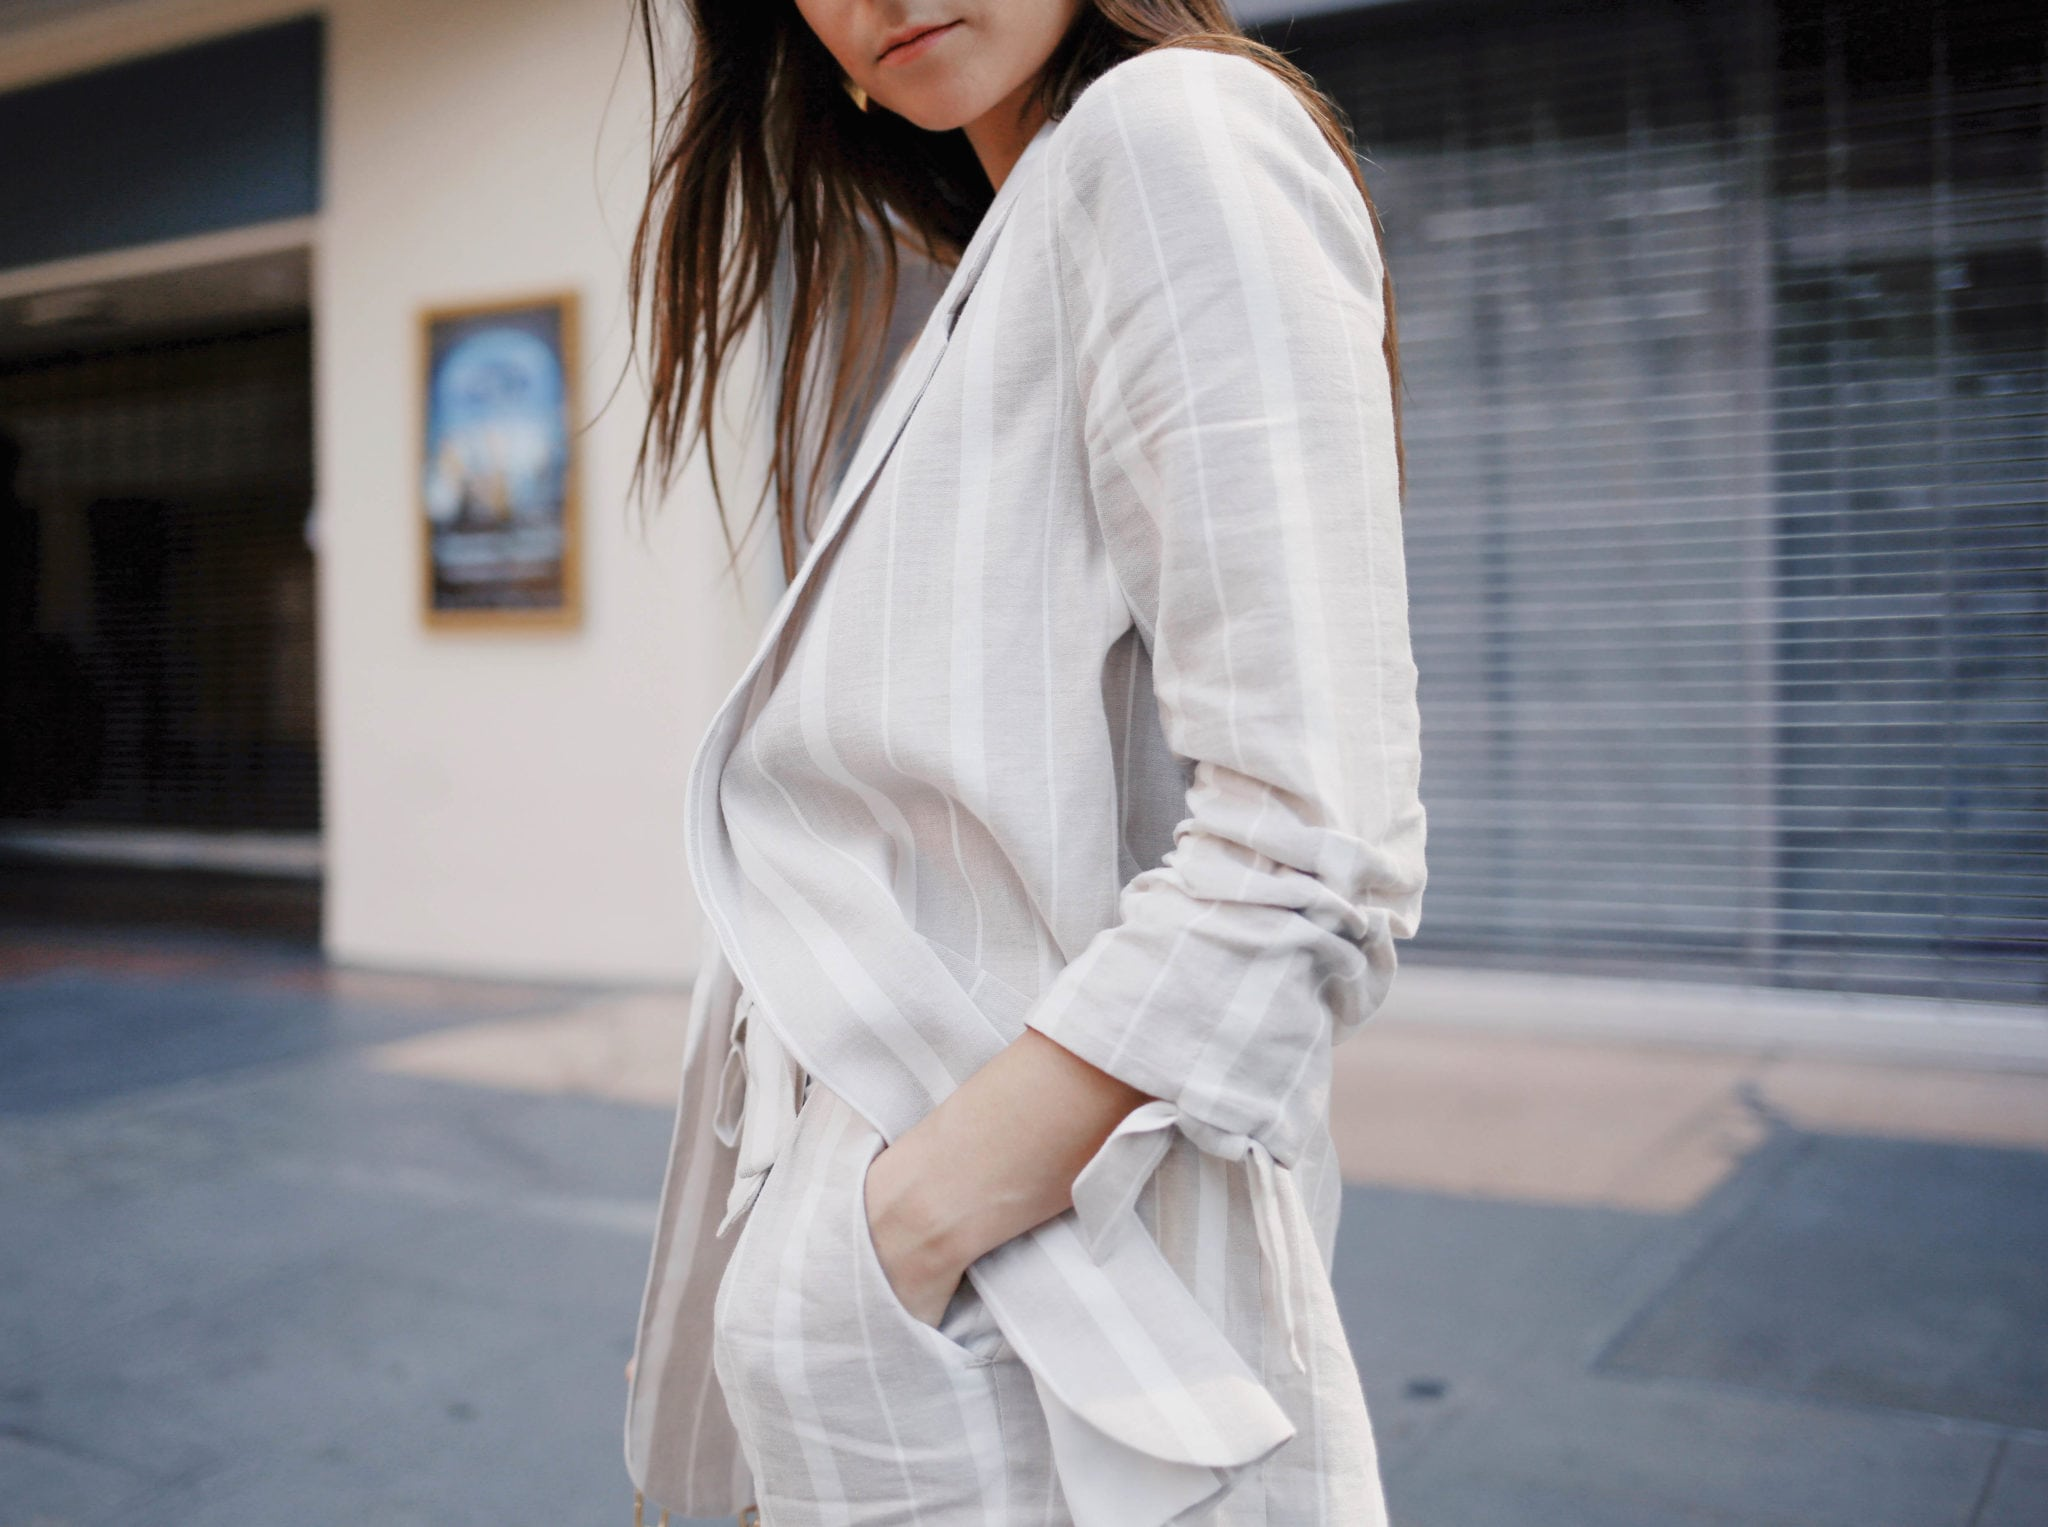 How to style linen - The linen suit for women and the bardot dress from River Island. Summer style - Read this post for summer outfit ideas using linen fabric. More on modersvp.com